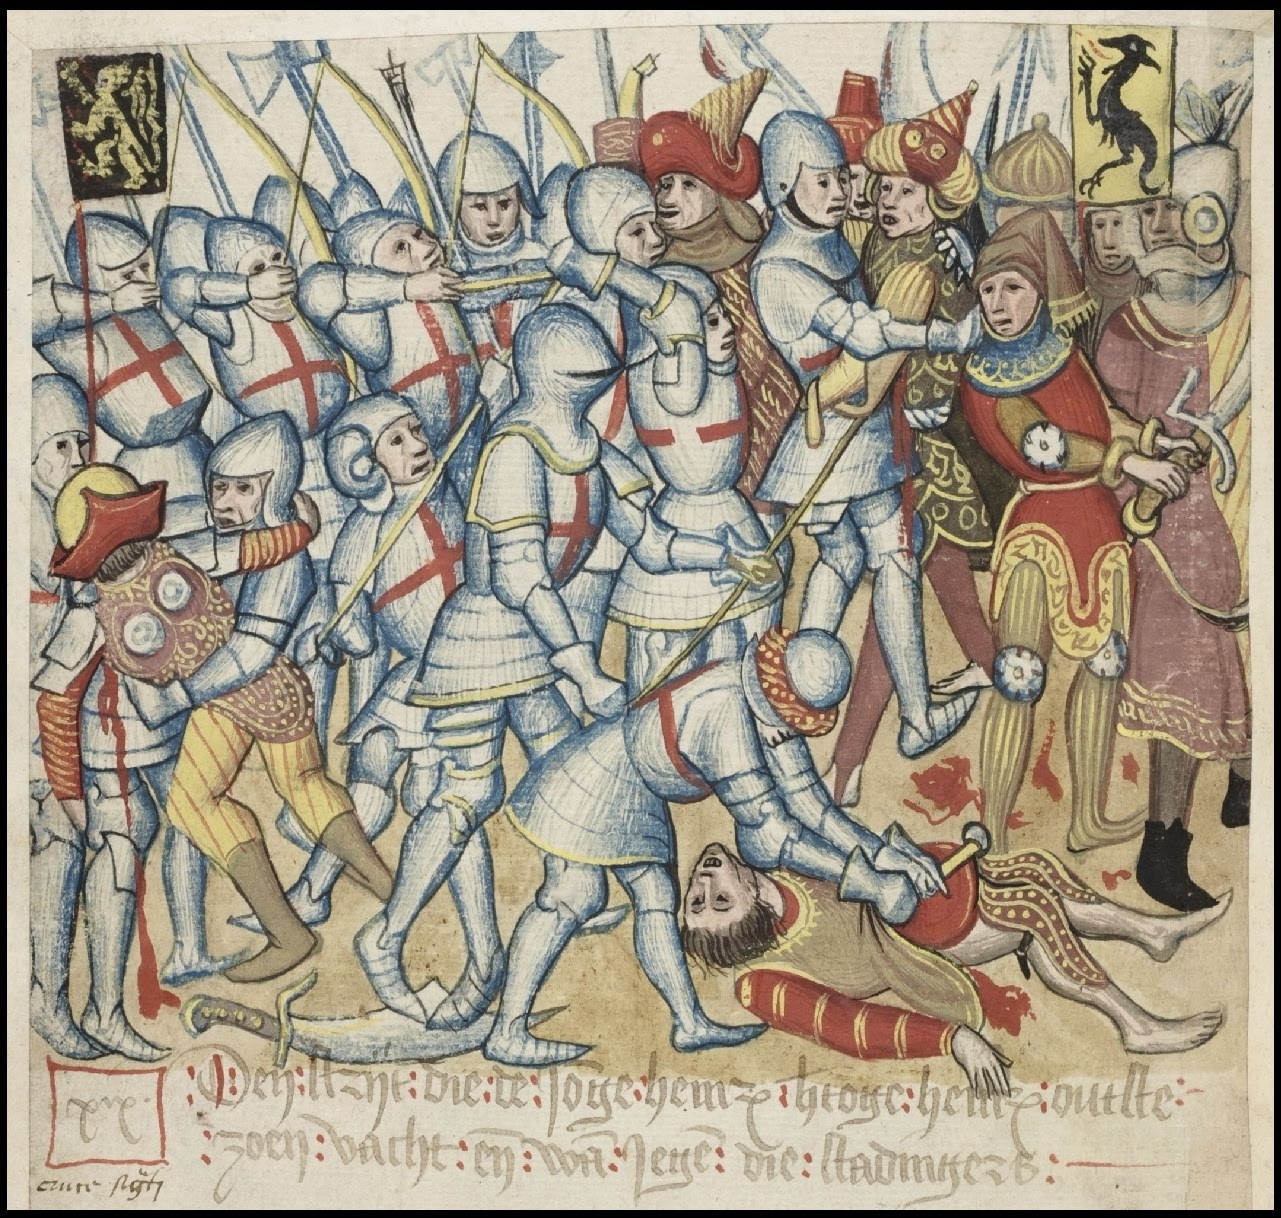 armoured soldiers fighting in crowded illustration scene